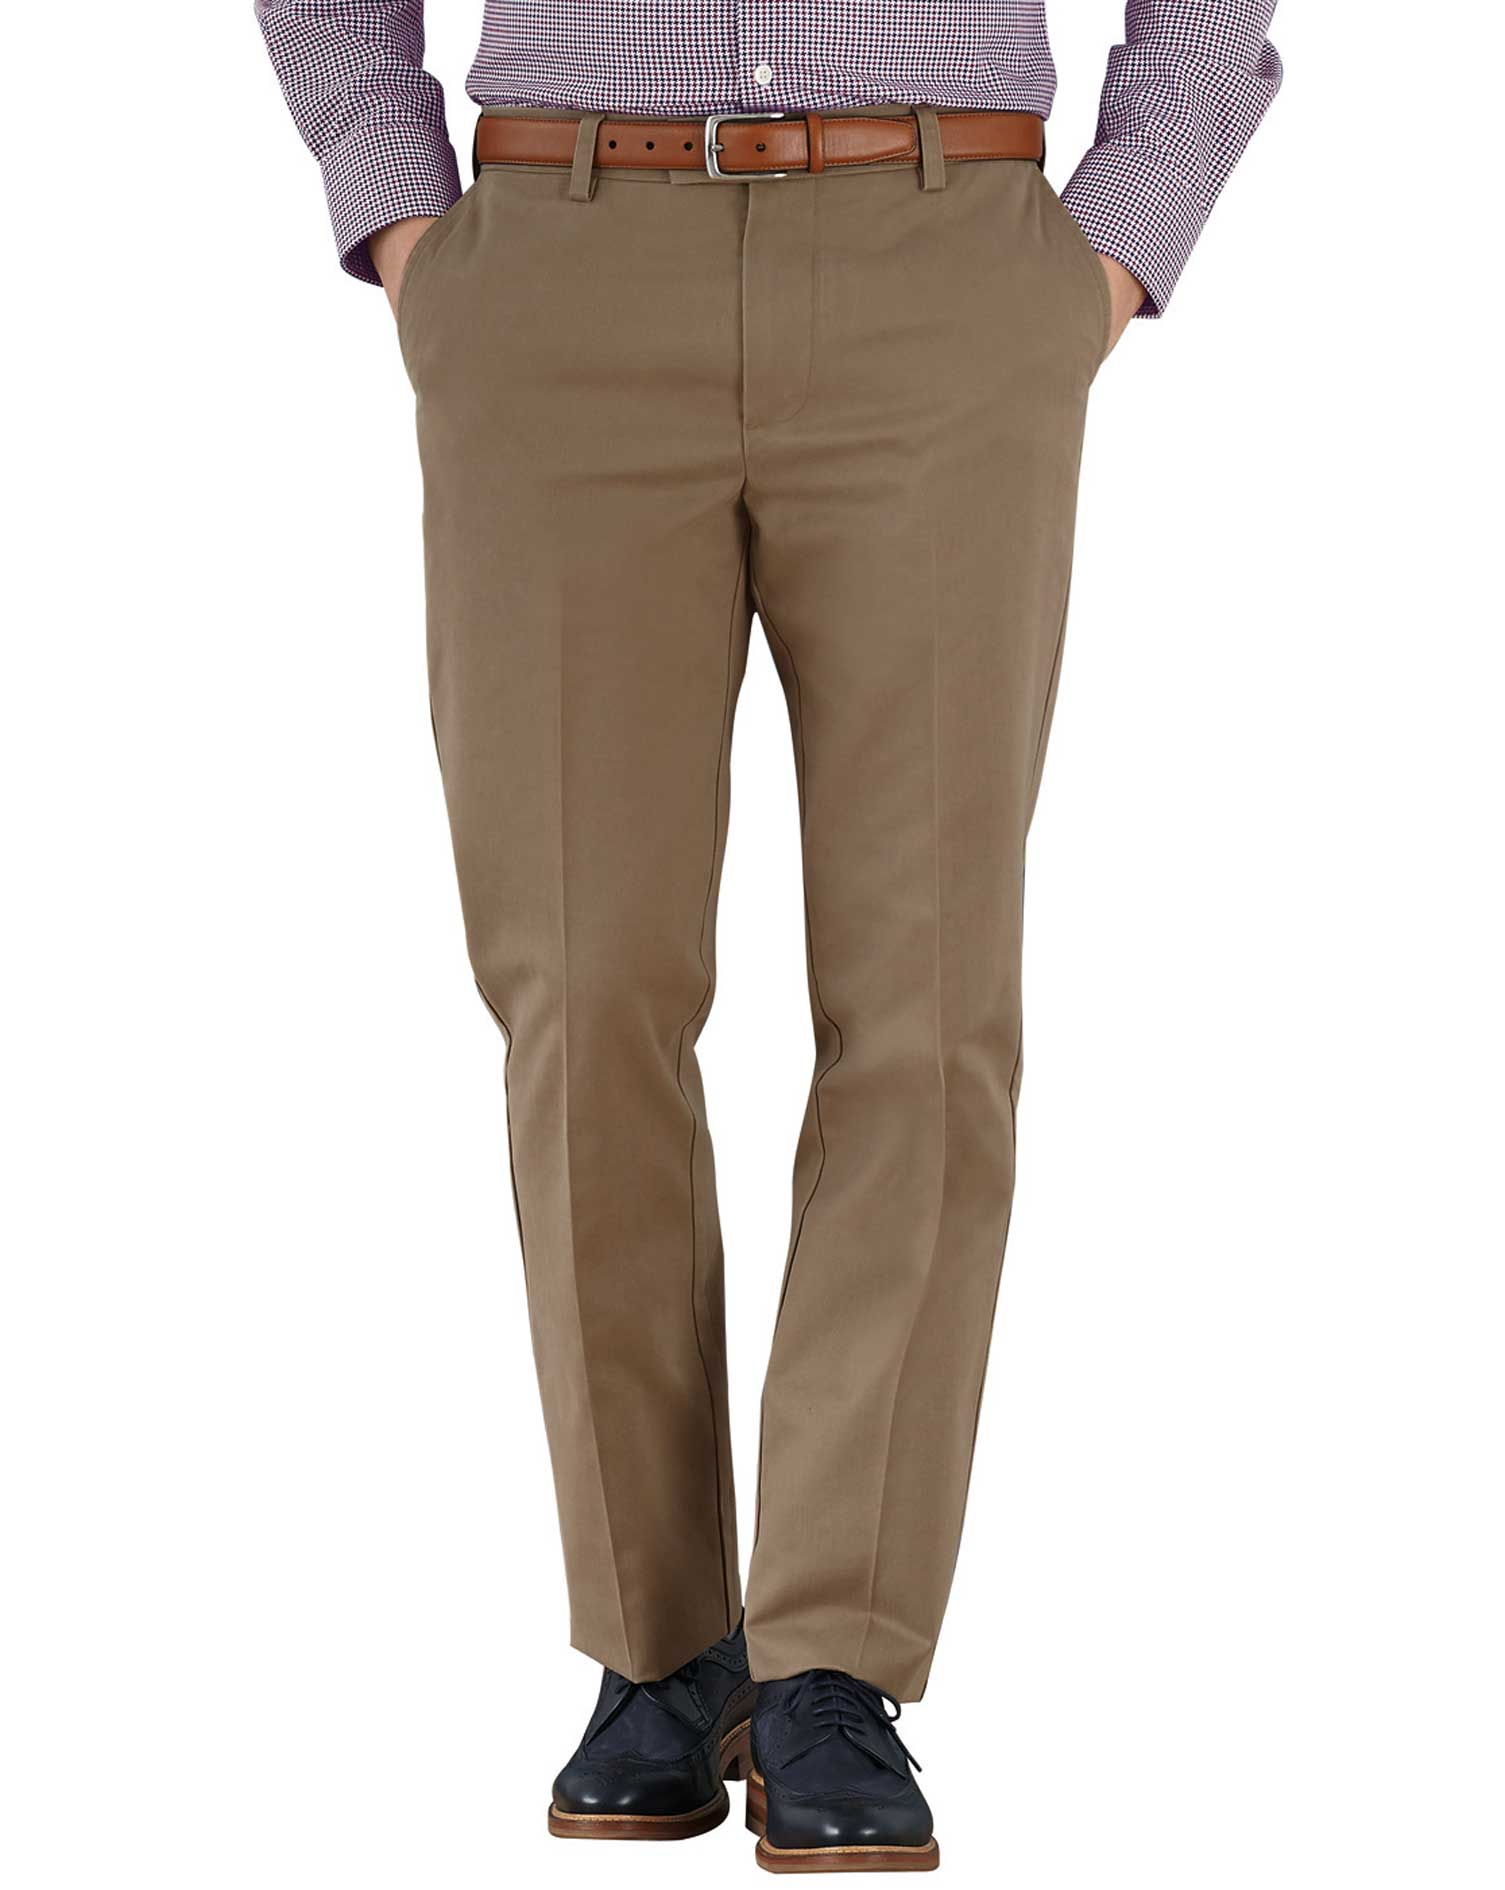 Tan Slim Fit Flat Front Non-Iron Cotton Chino Trousers Size W36 L29 by Charles Tyrwhitt